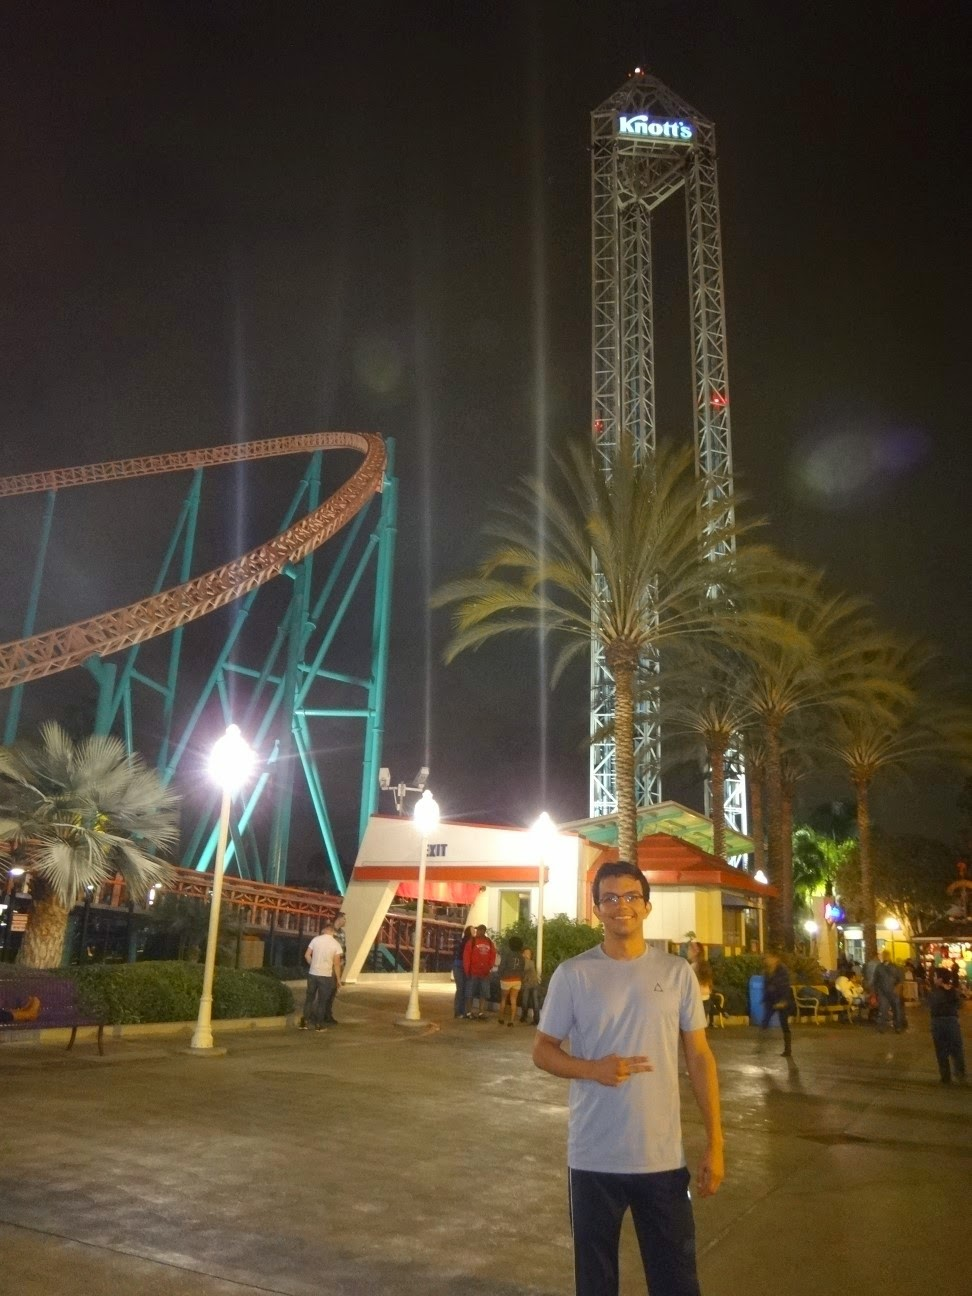 knotts berry farm - los angeles